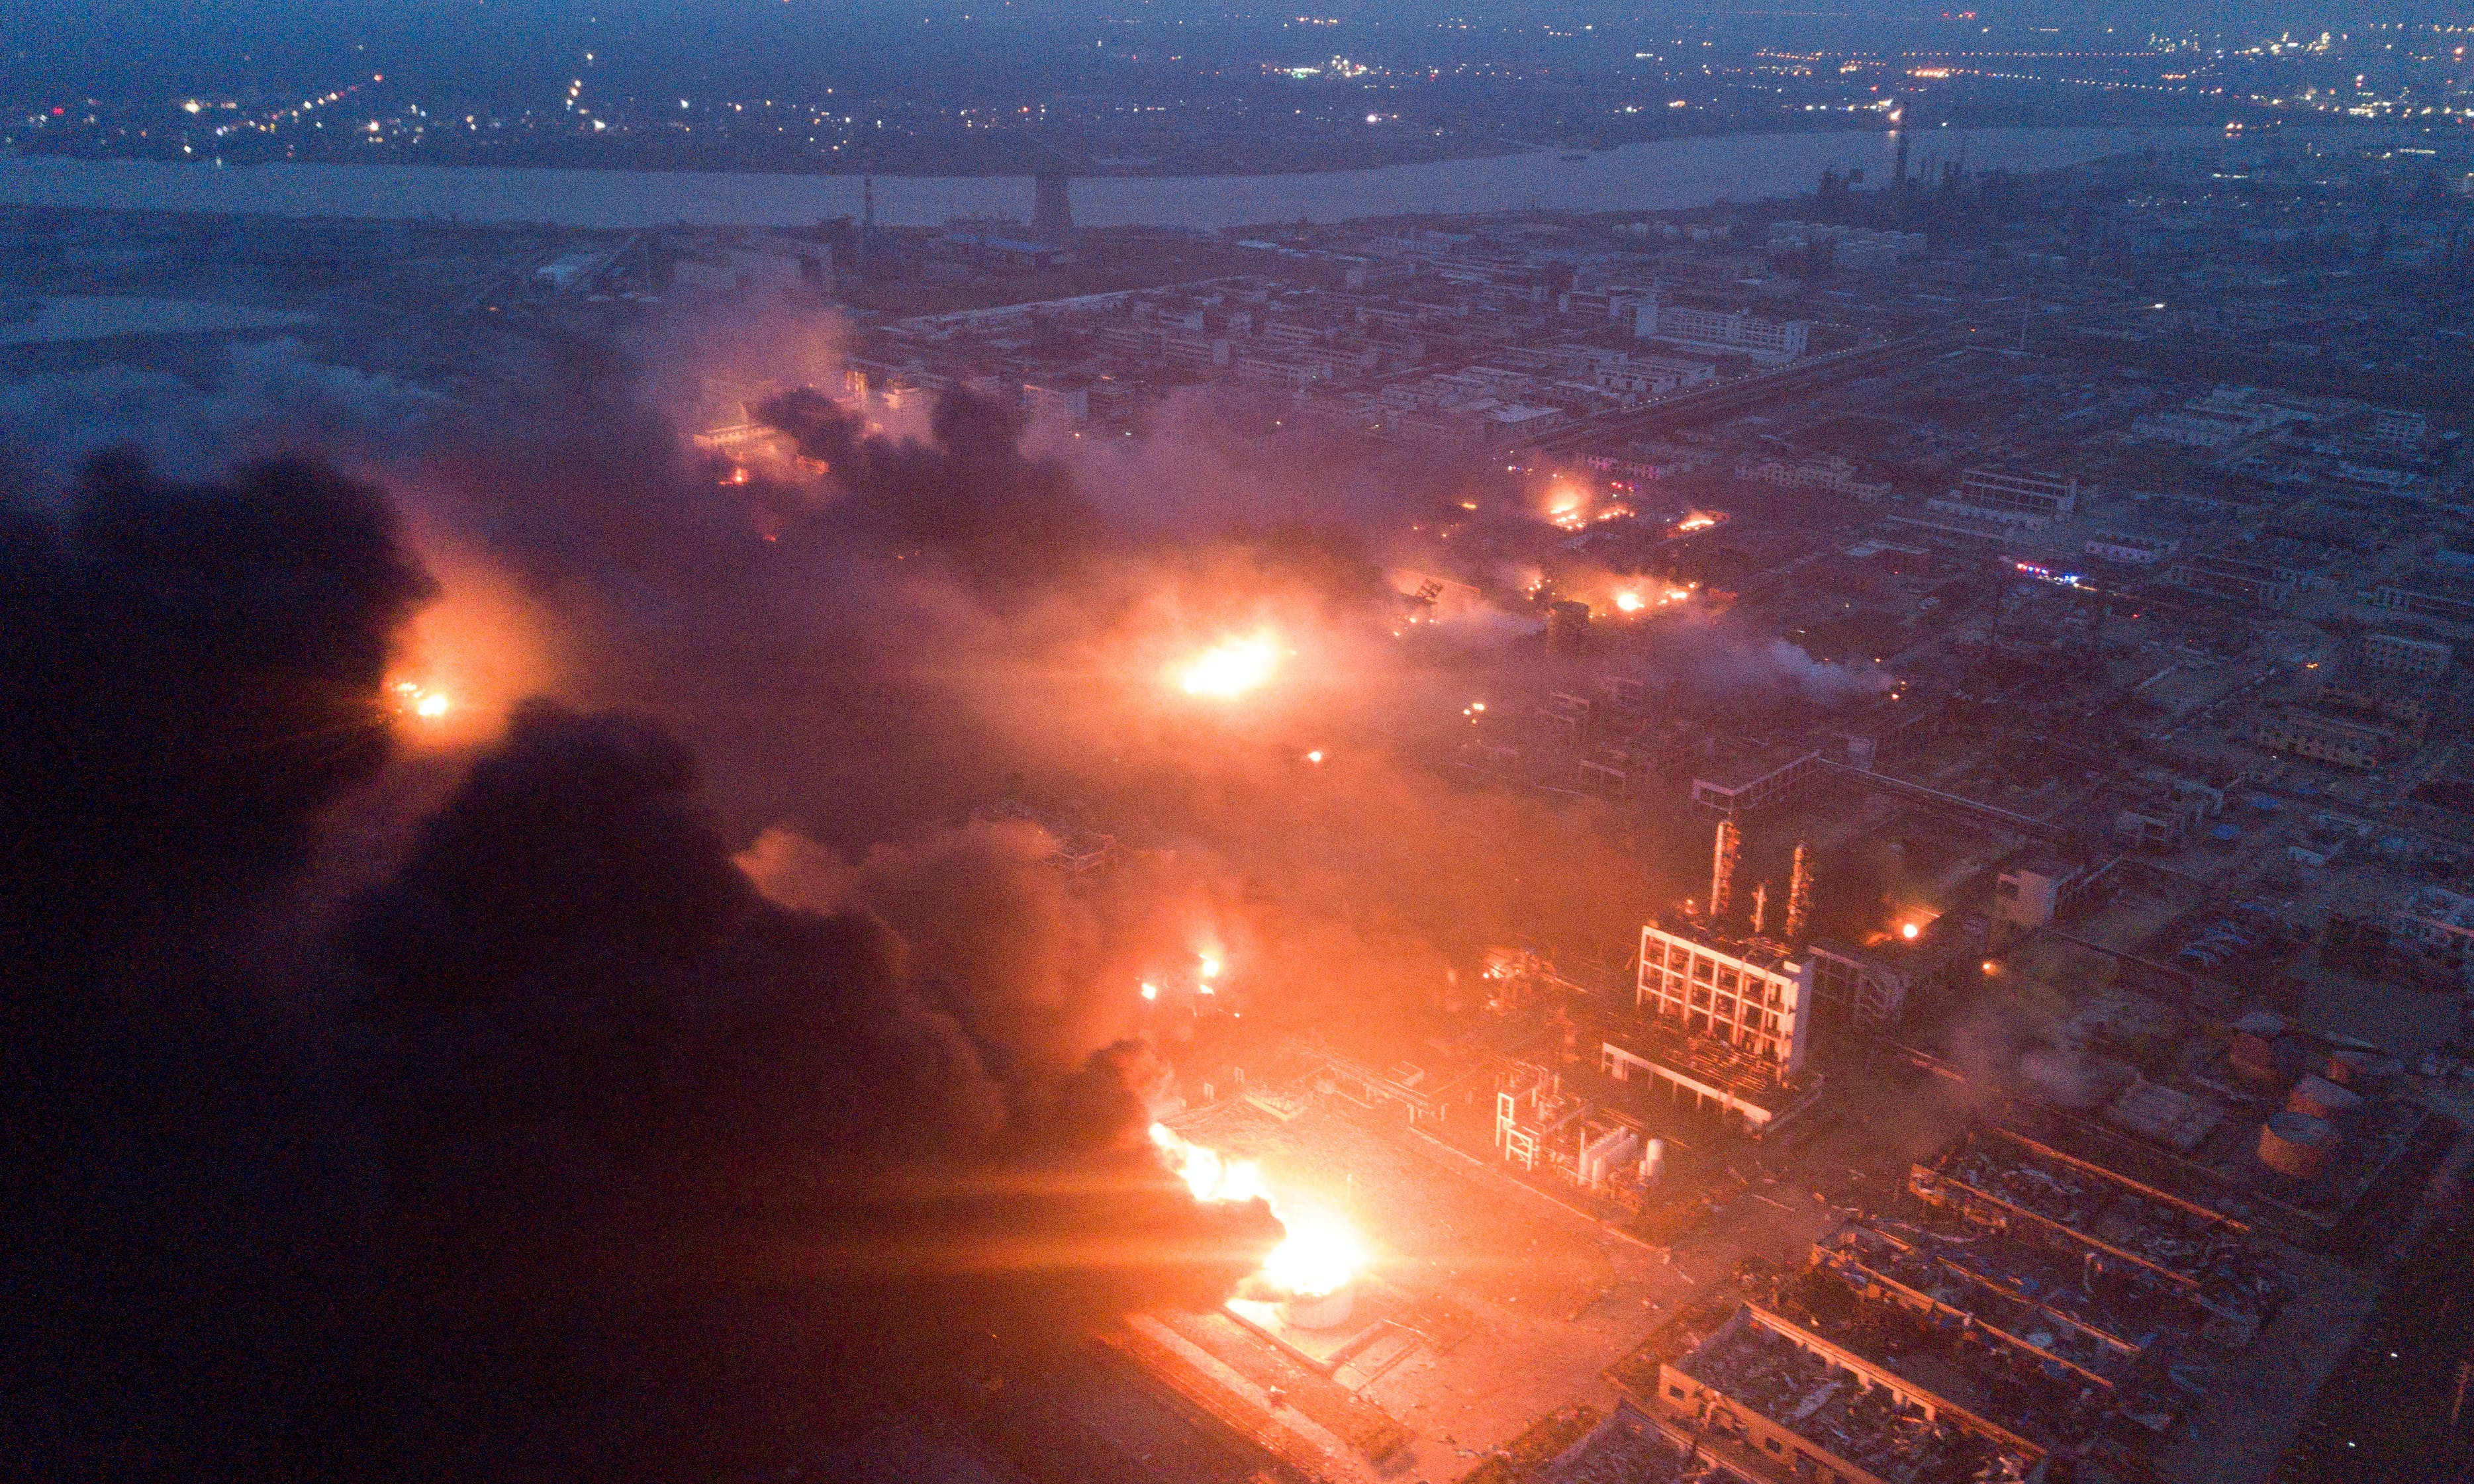 At Least 47 Killed, 90 Injured in Chemical Explosion in Eastern China